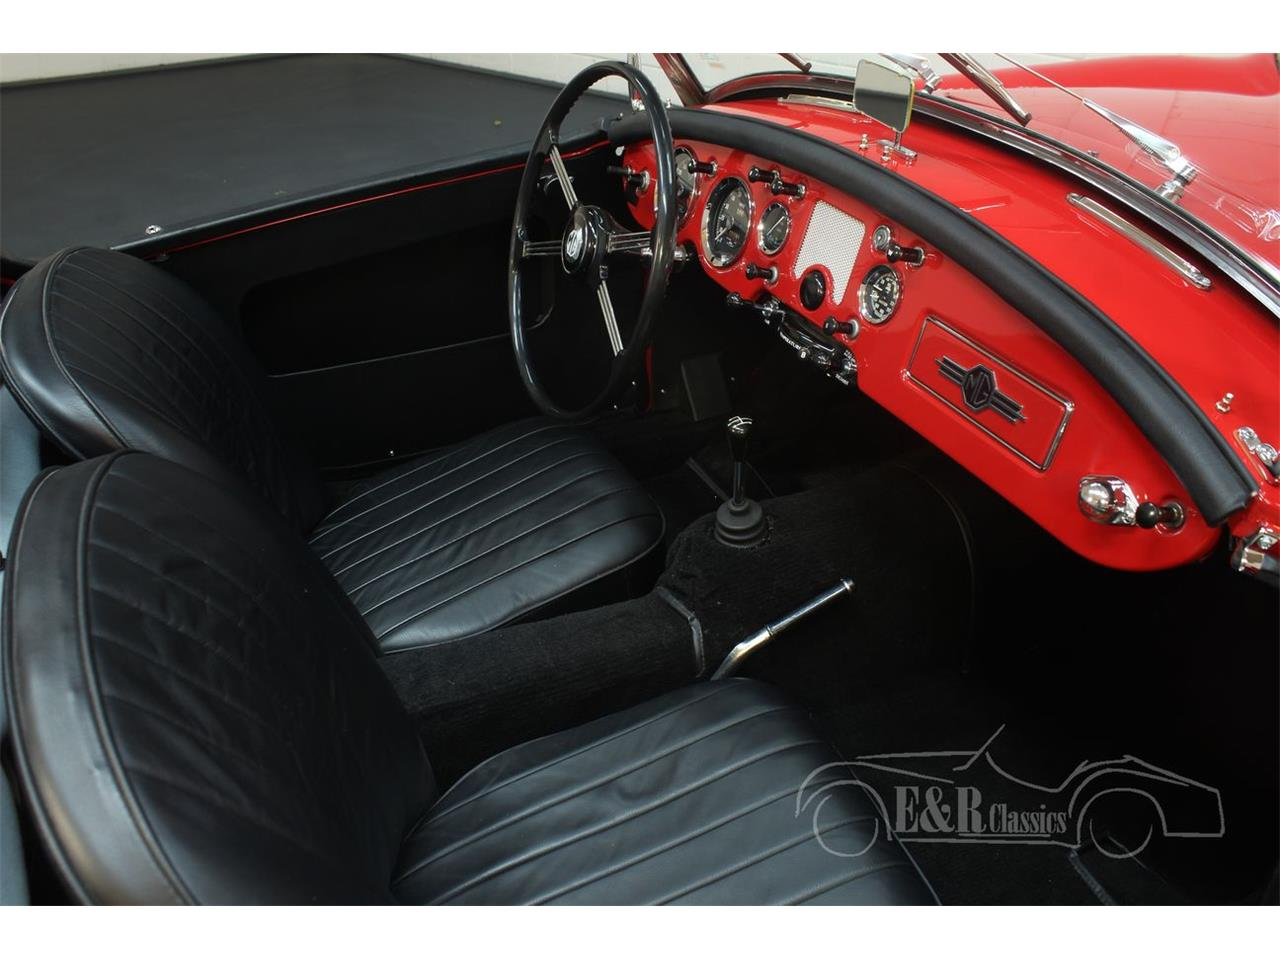 Large Picture of Classic 1959 MG MGA located in Waalwijk - Keine Angabe - - $56,500.00 - PGST